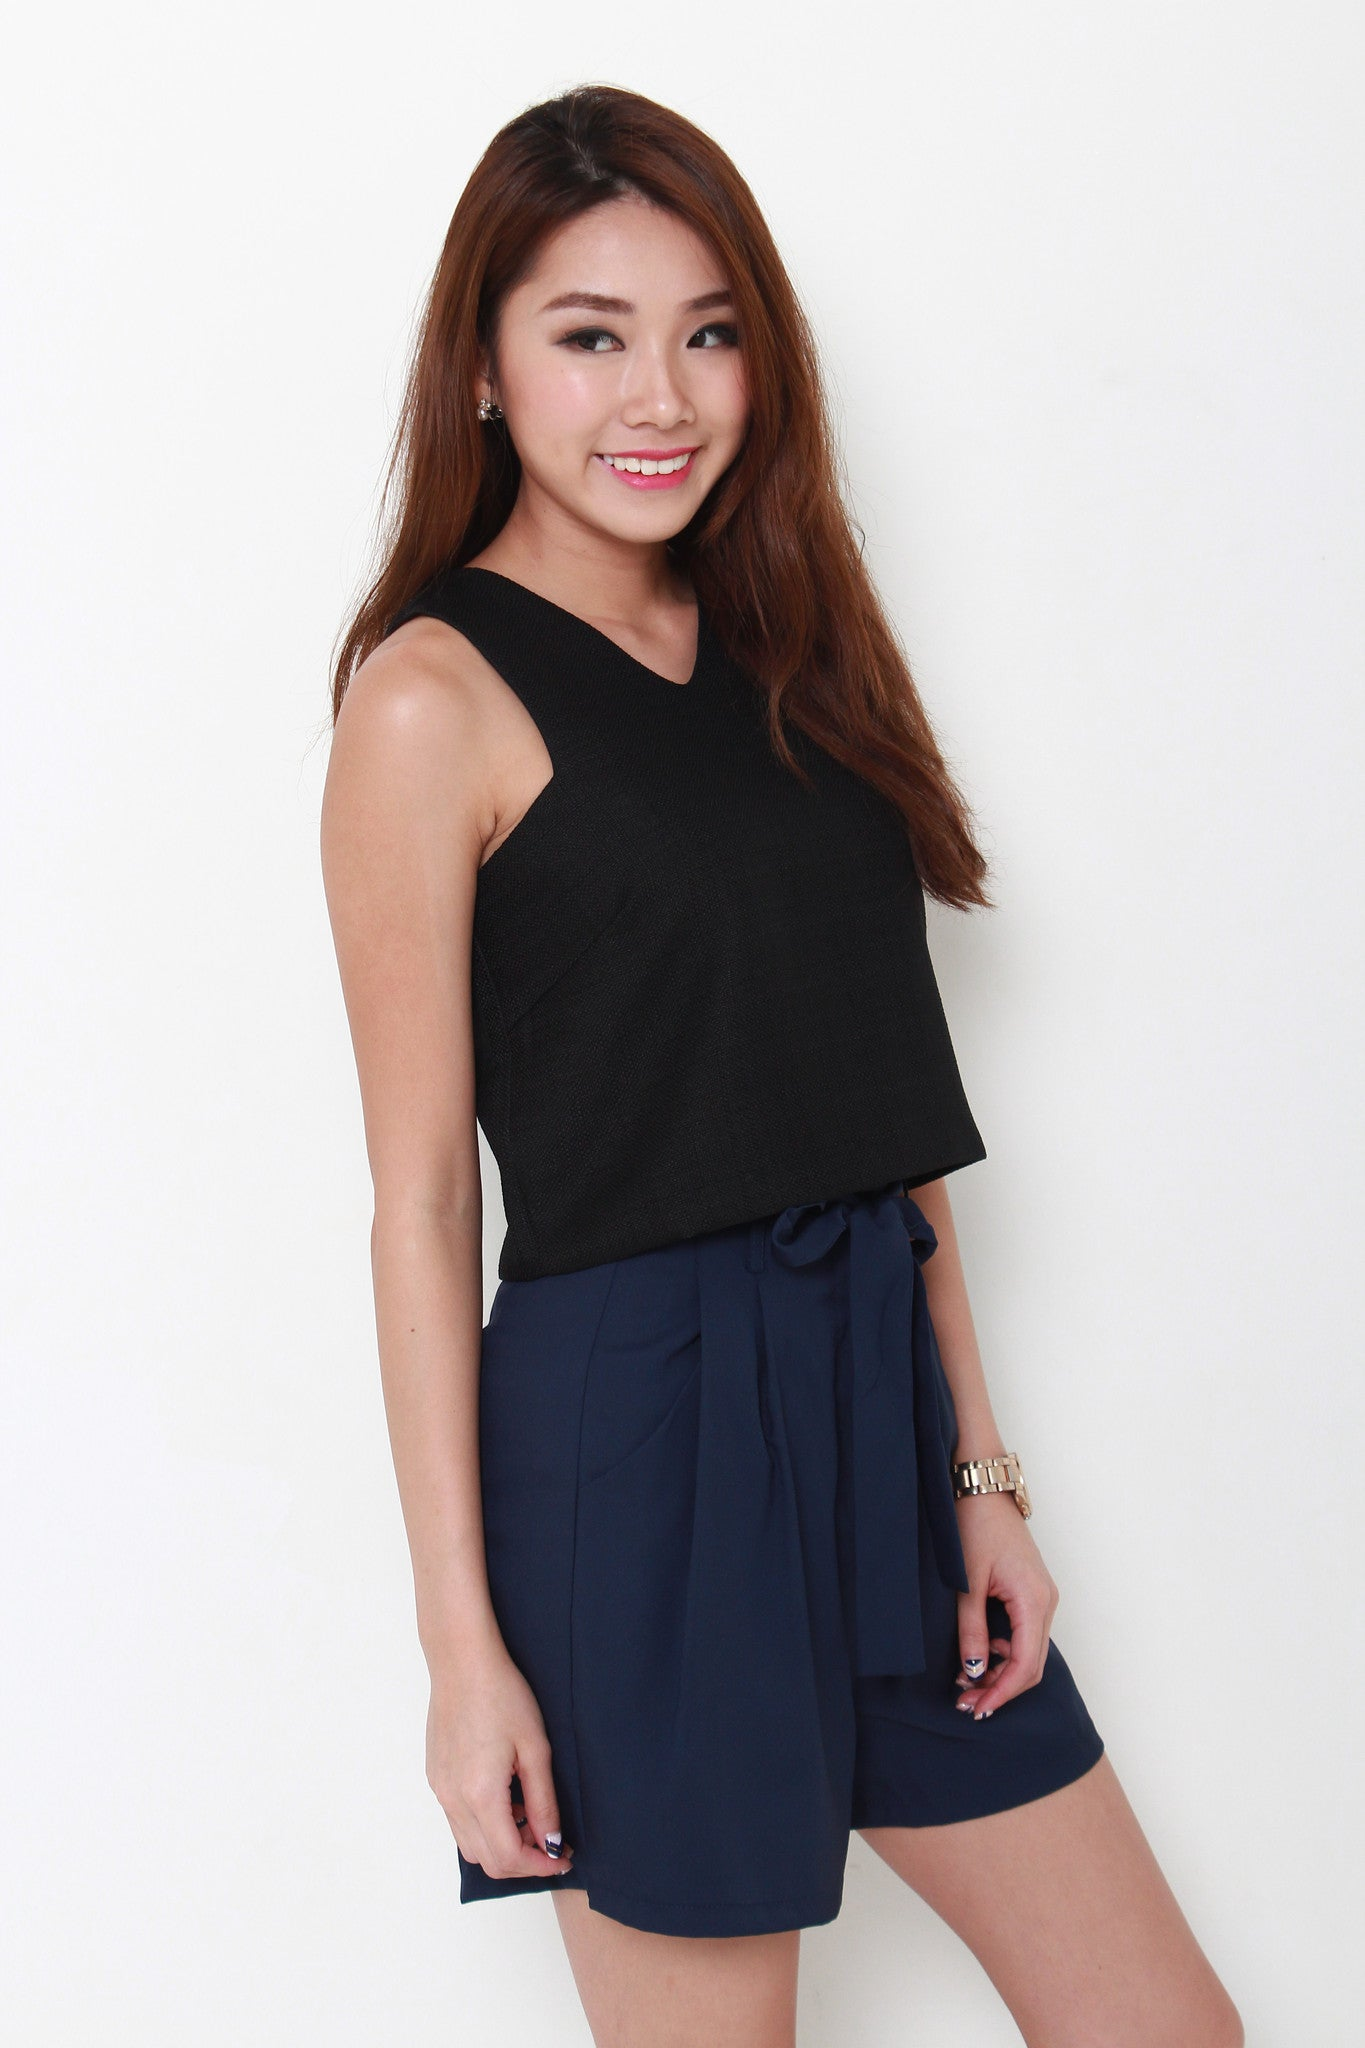 Sonia Tweed Crop Top in Black